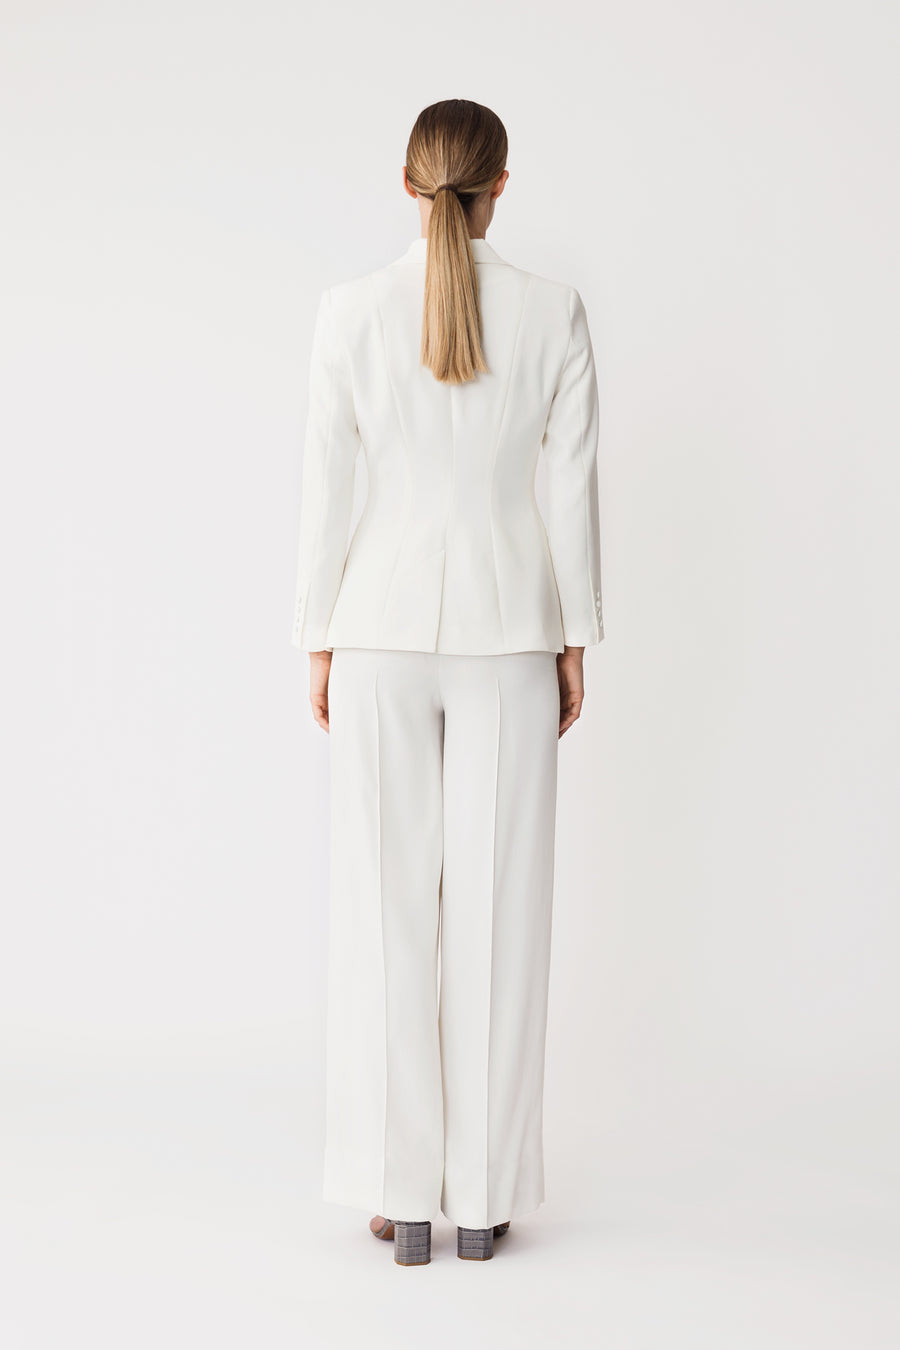 BILL TROUSERS - WHITE